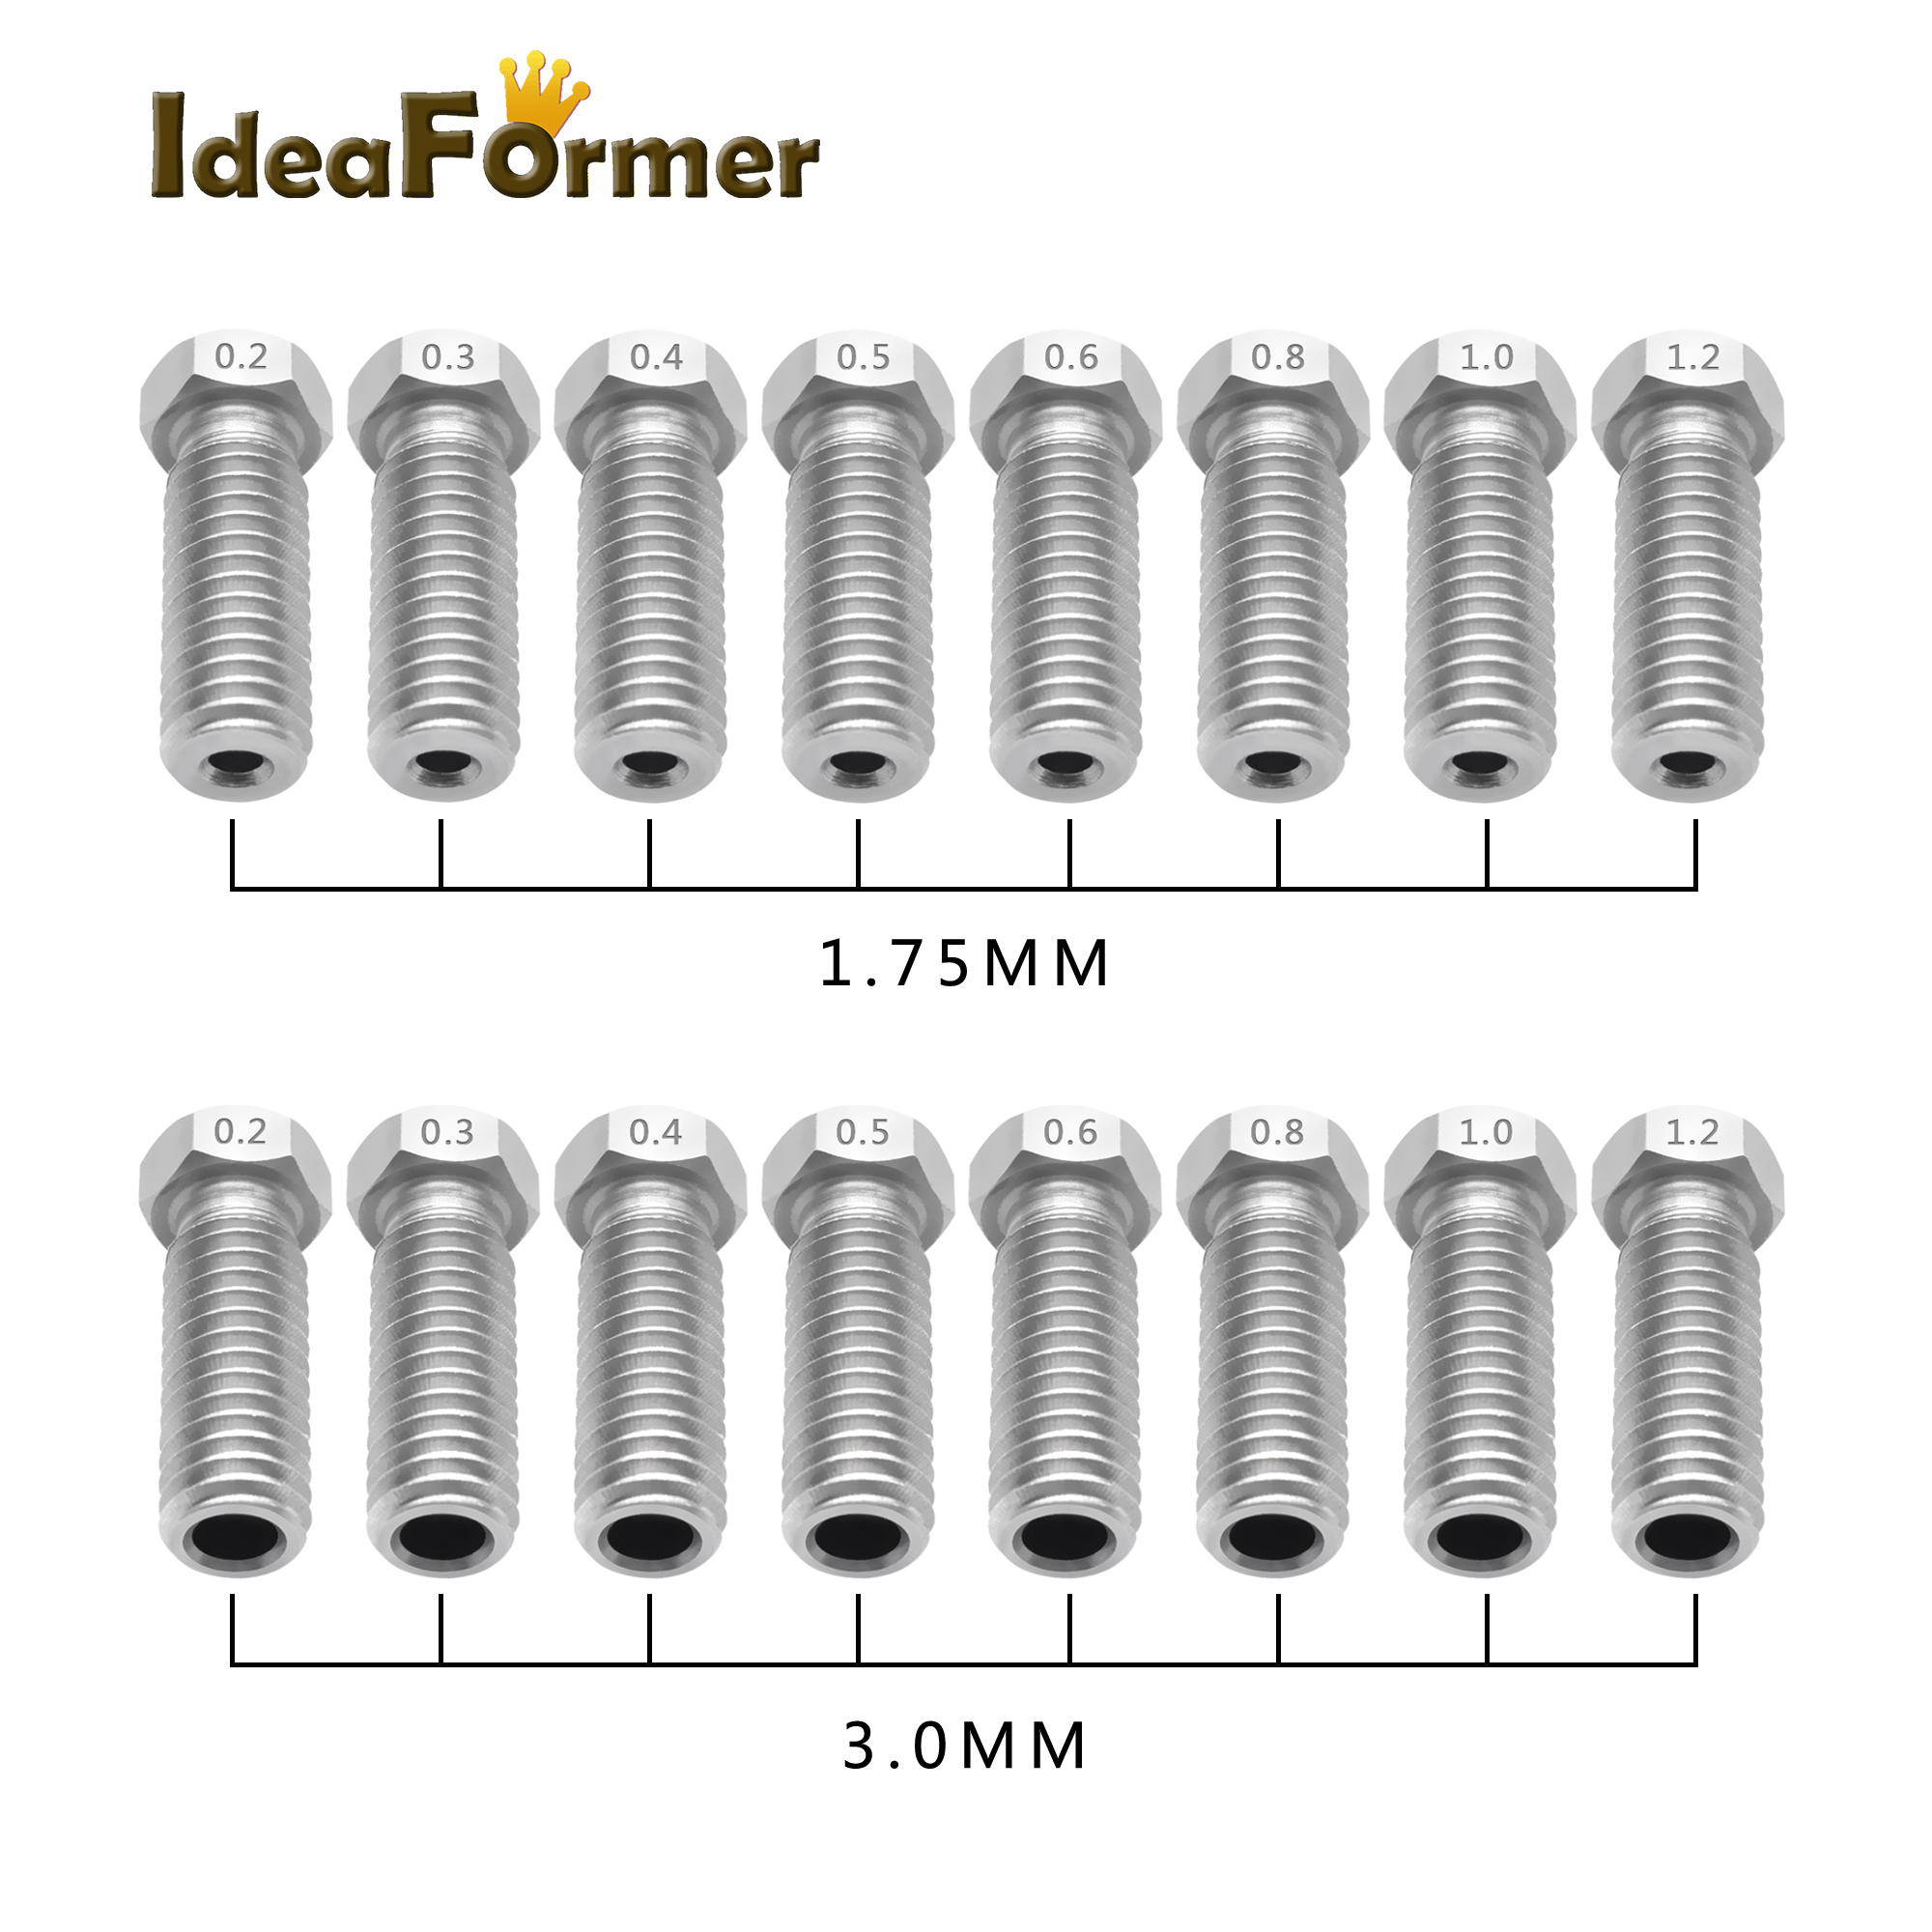 5pcs All-Mental Volcano Stainless Steel Nozzles For 3D Printer 0.2mm-1.2mm For 1.75/3.0mm Extra Lengthen M6 Nozzles Parts